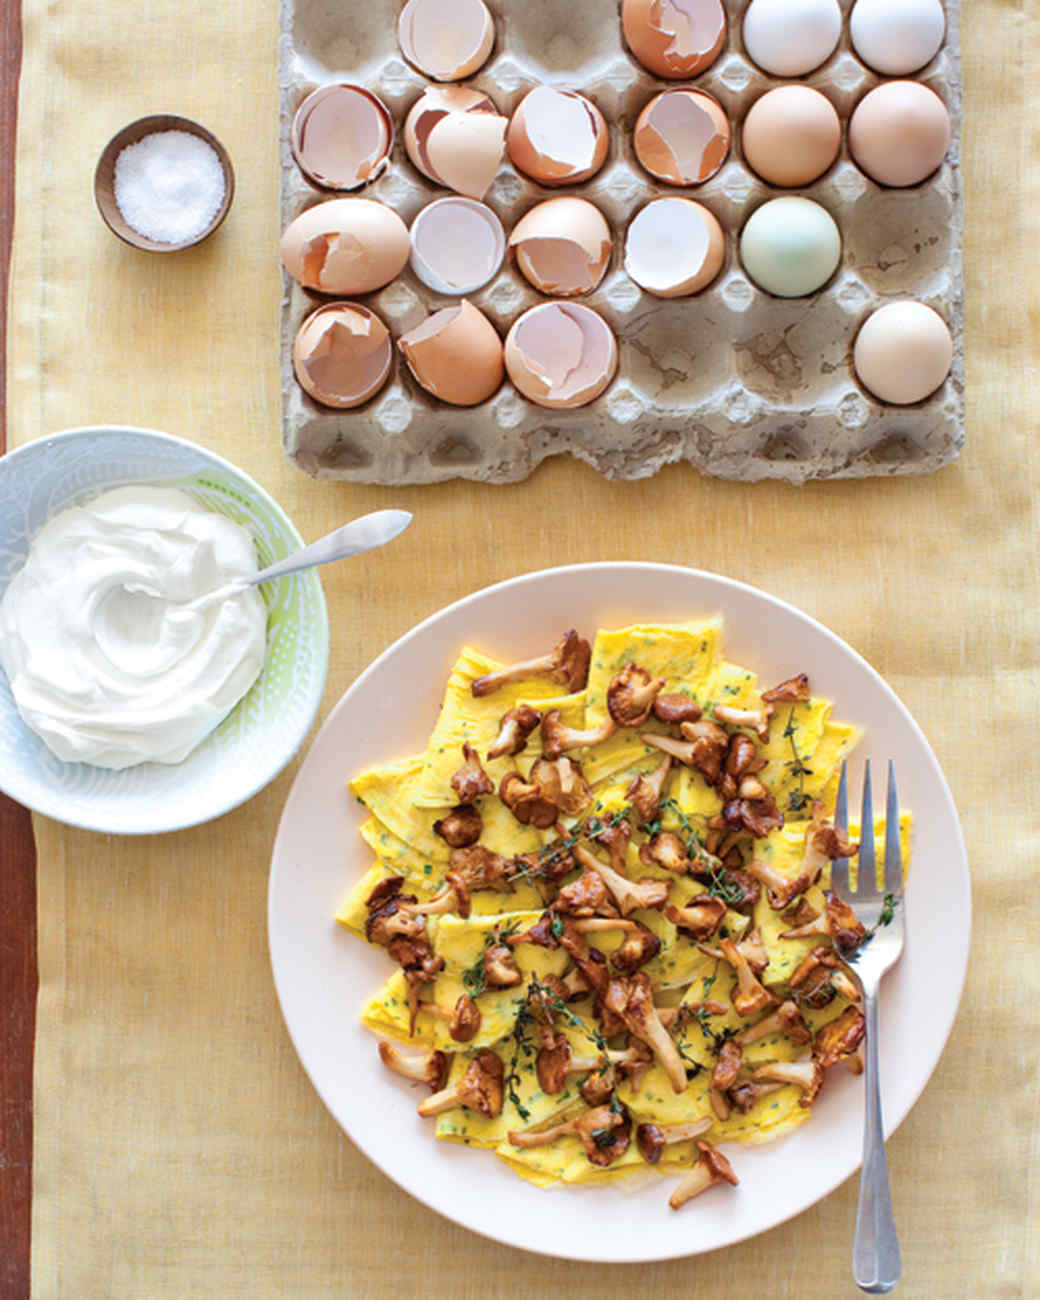 Chive Omelets with Chanterelles